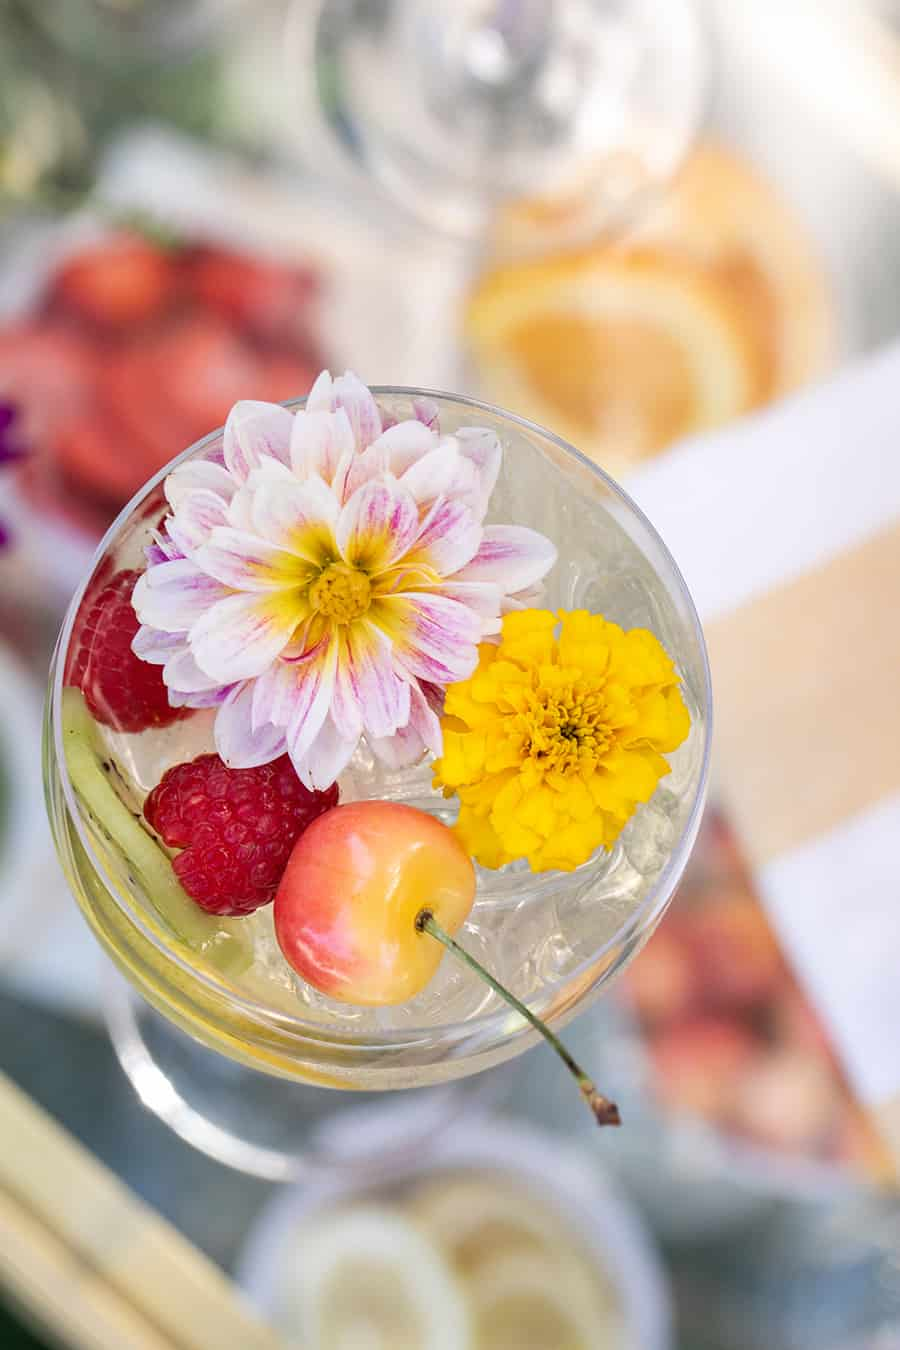 Overhead of cocktails with edible flower and cherries.